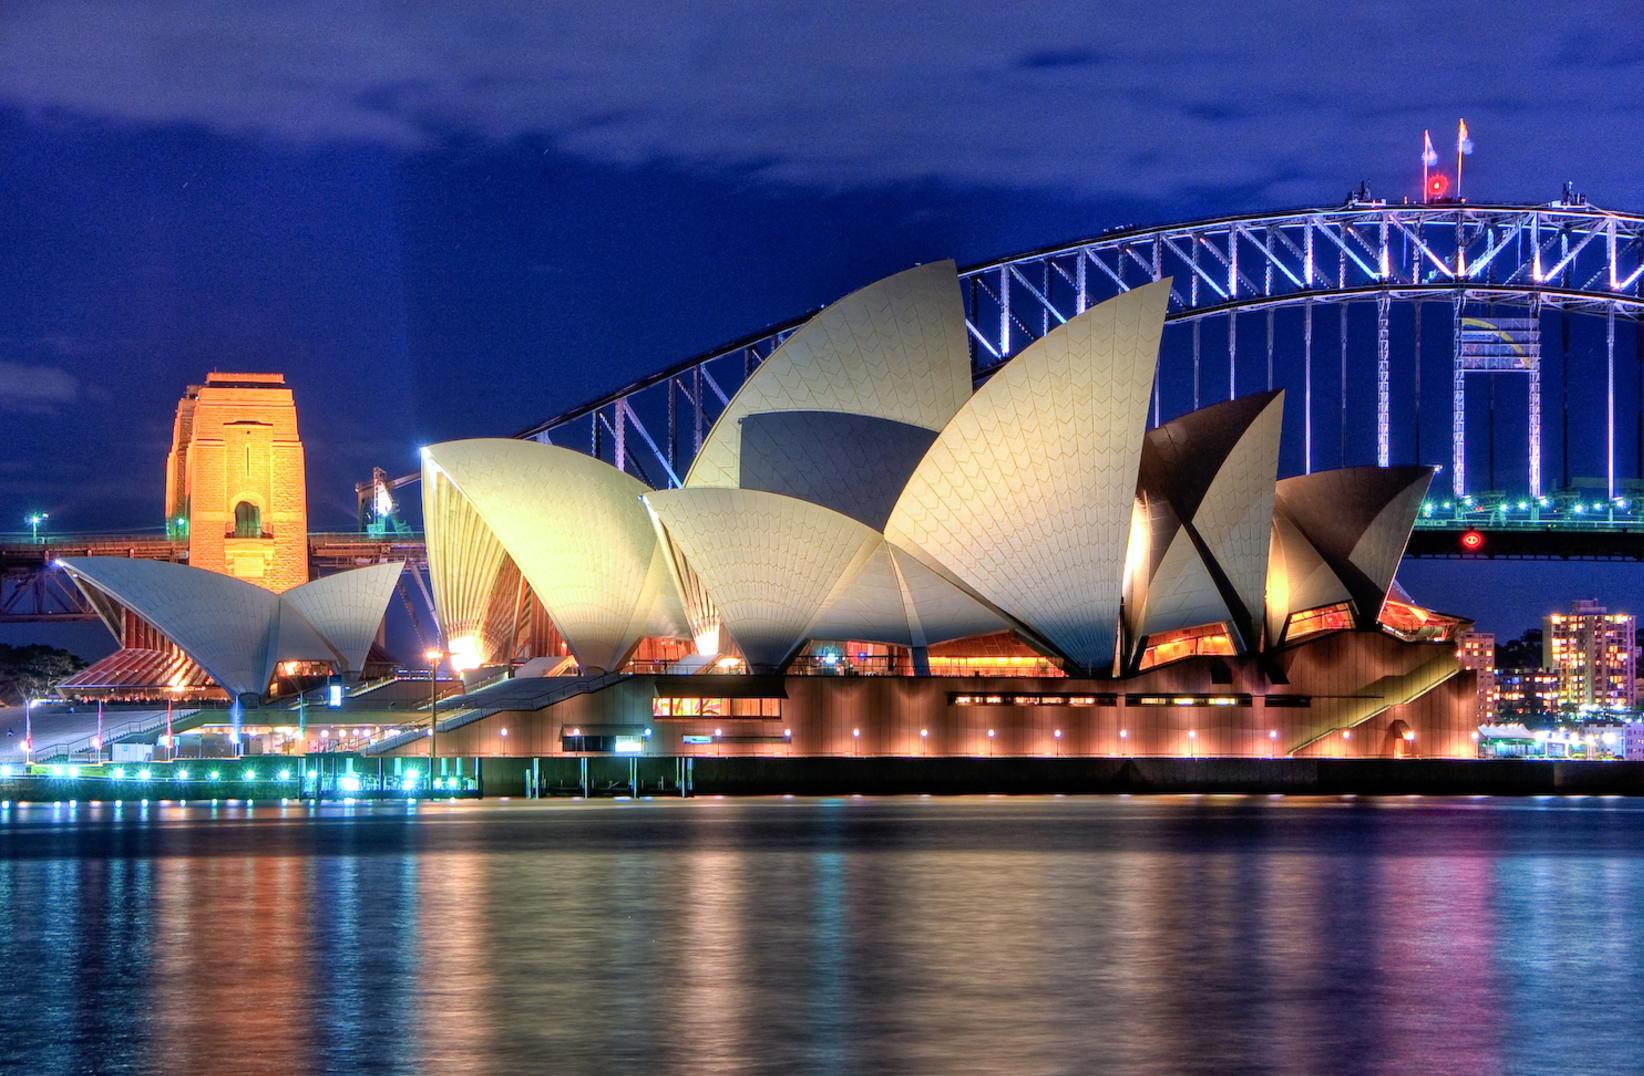 Sydney Terror Plot Foiled By Tip off Photo: WikiCommons, FlickreviewR, No Change